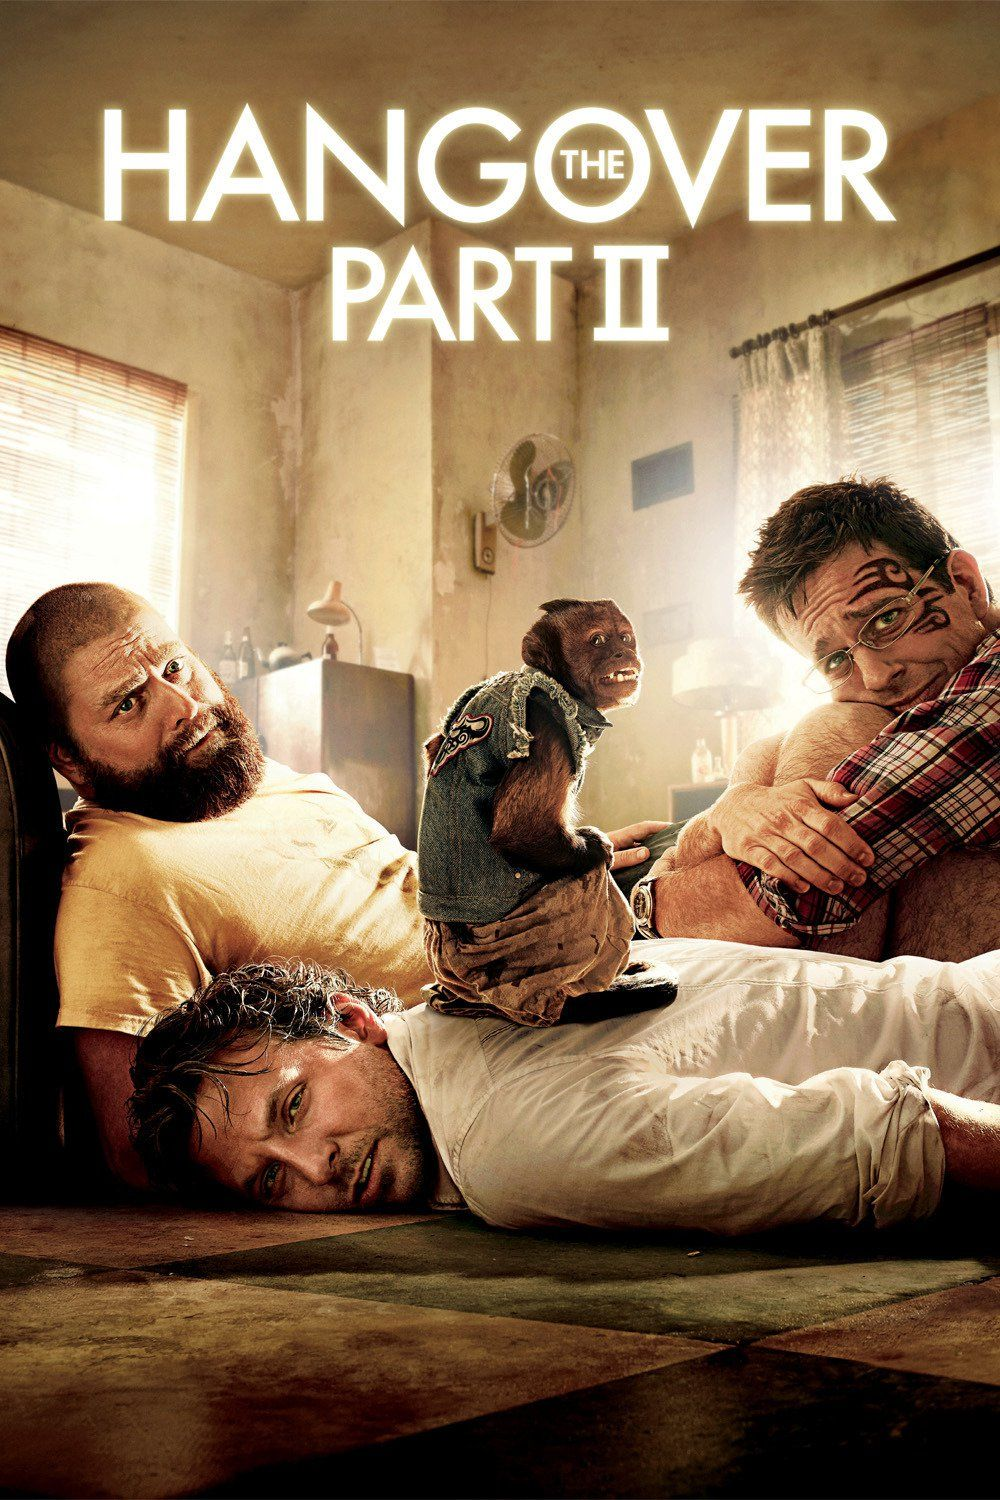 Watch Movie Online The Hangover Part Ii Free Download Full Hd